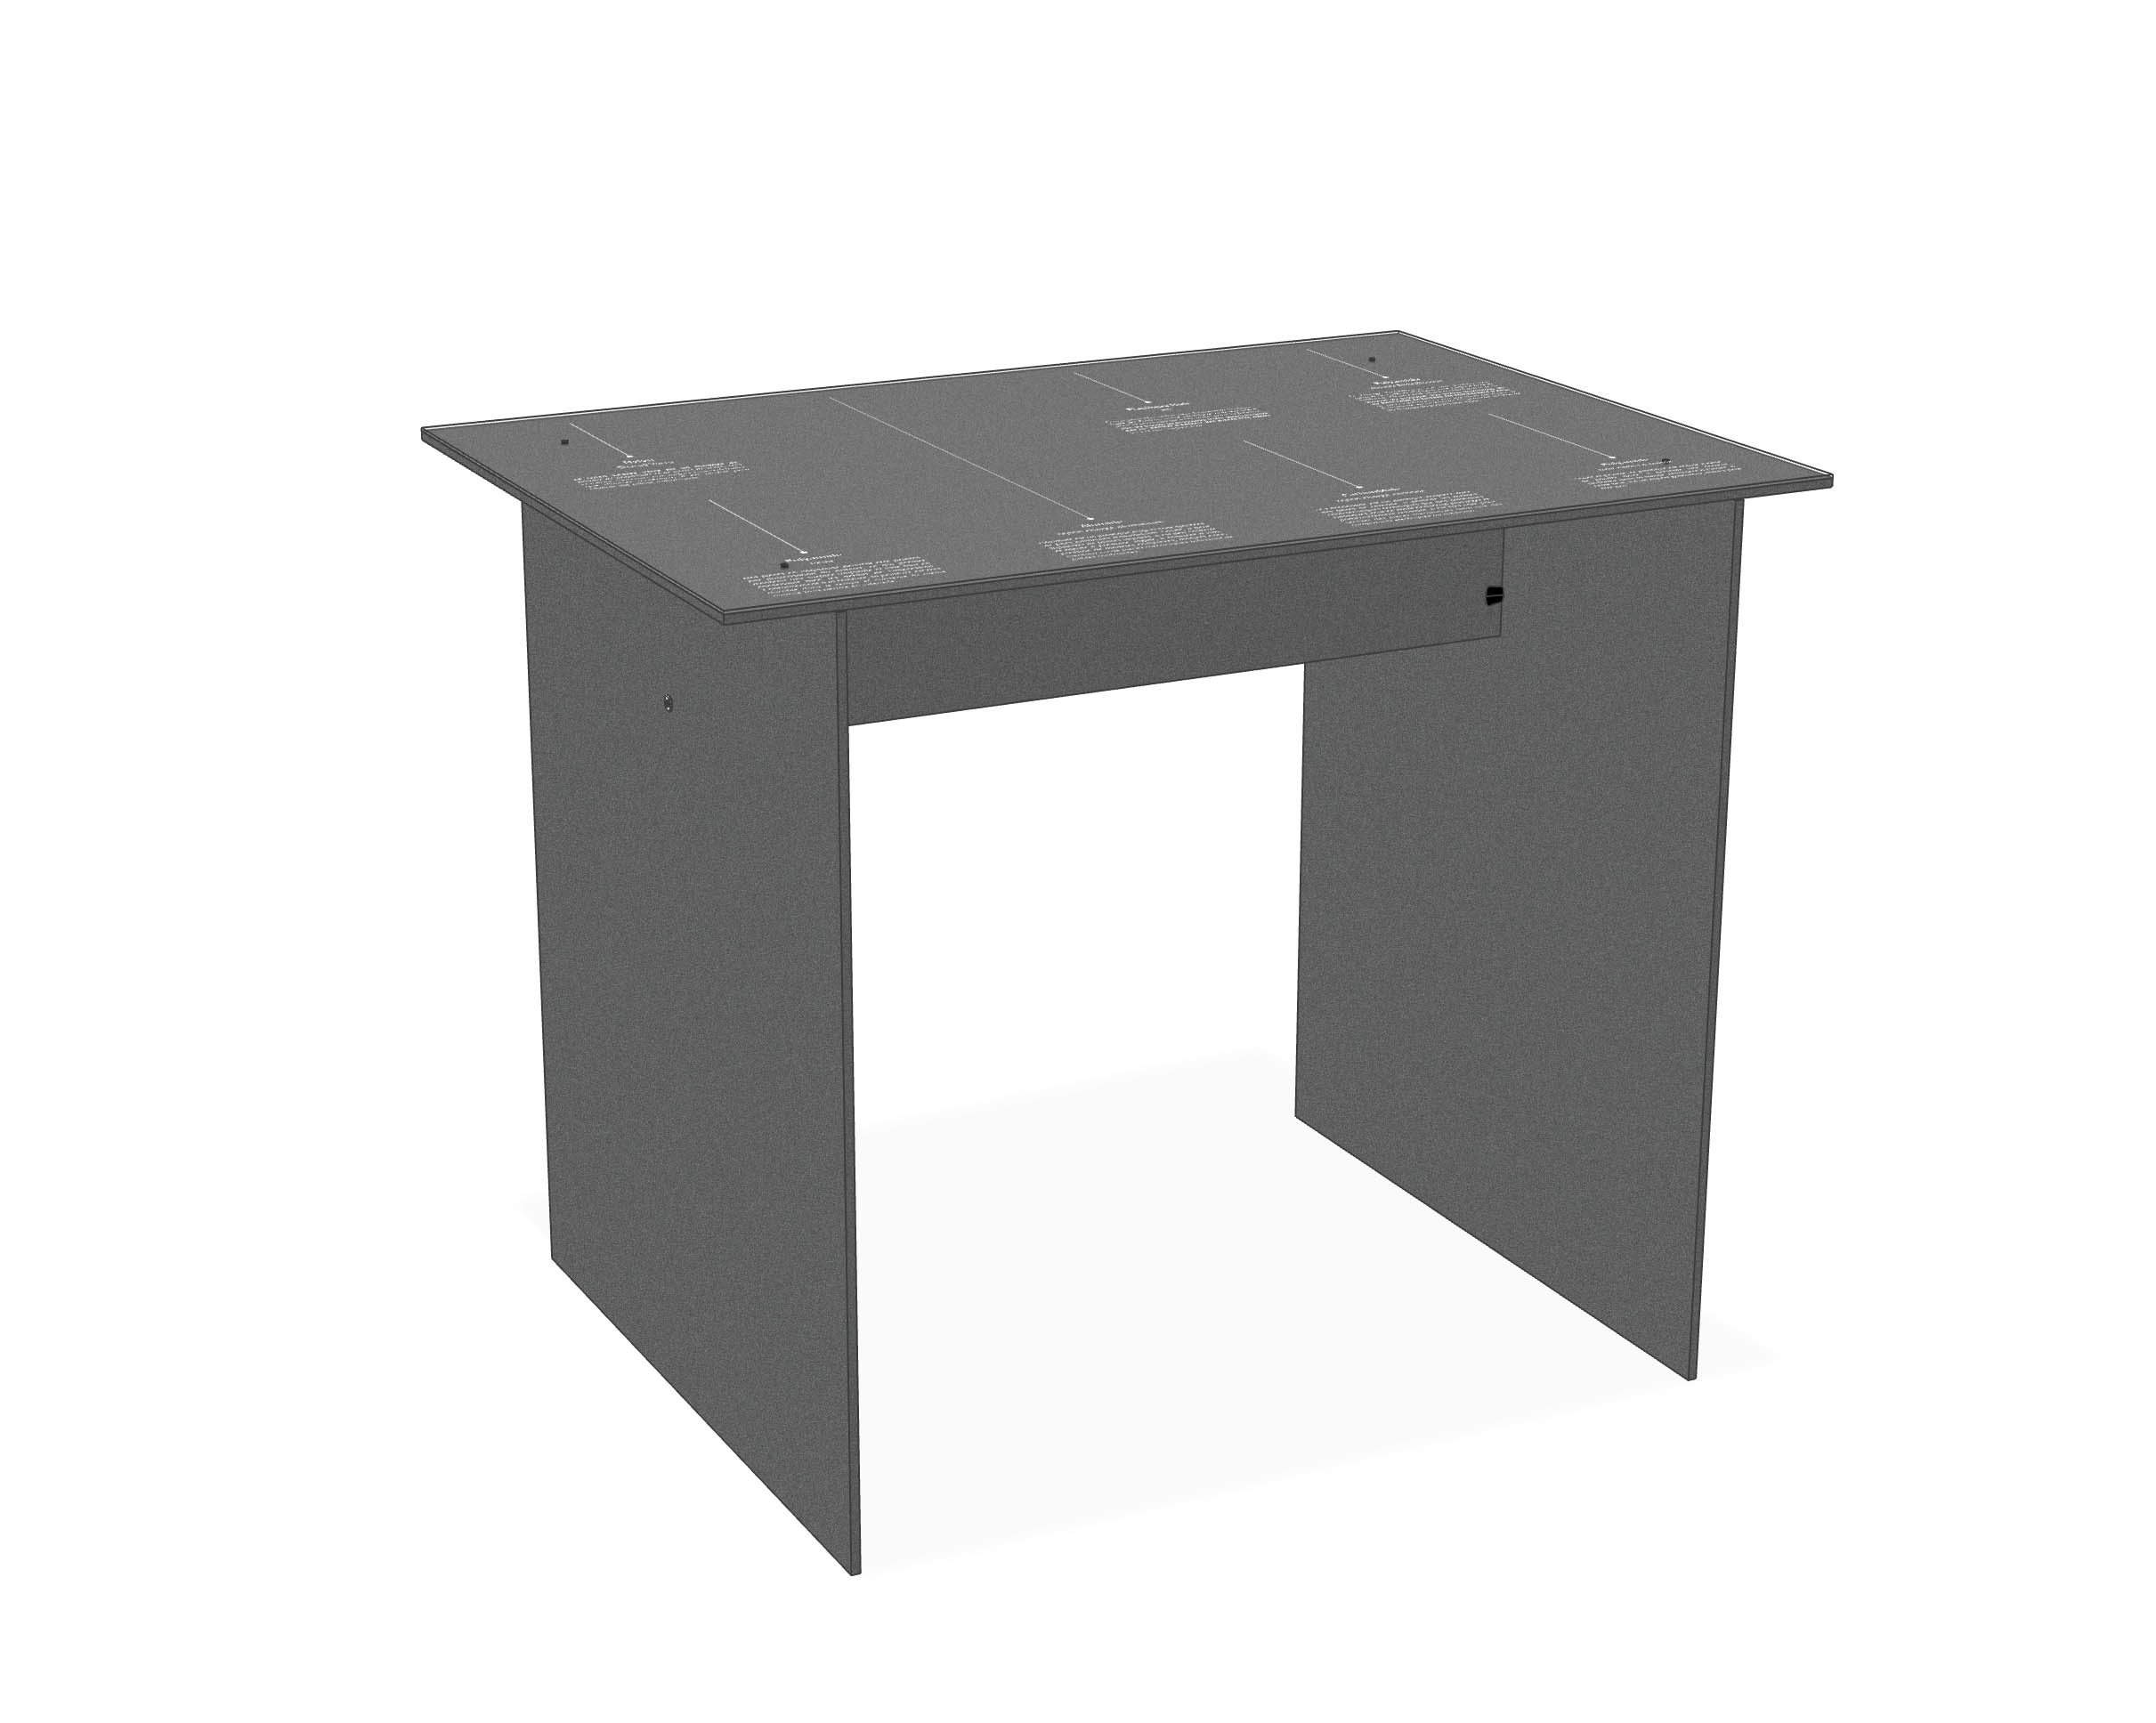 Tables with Laser cutting and laser engraving